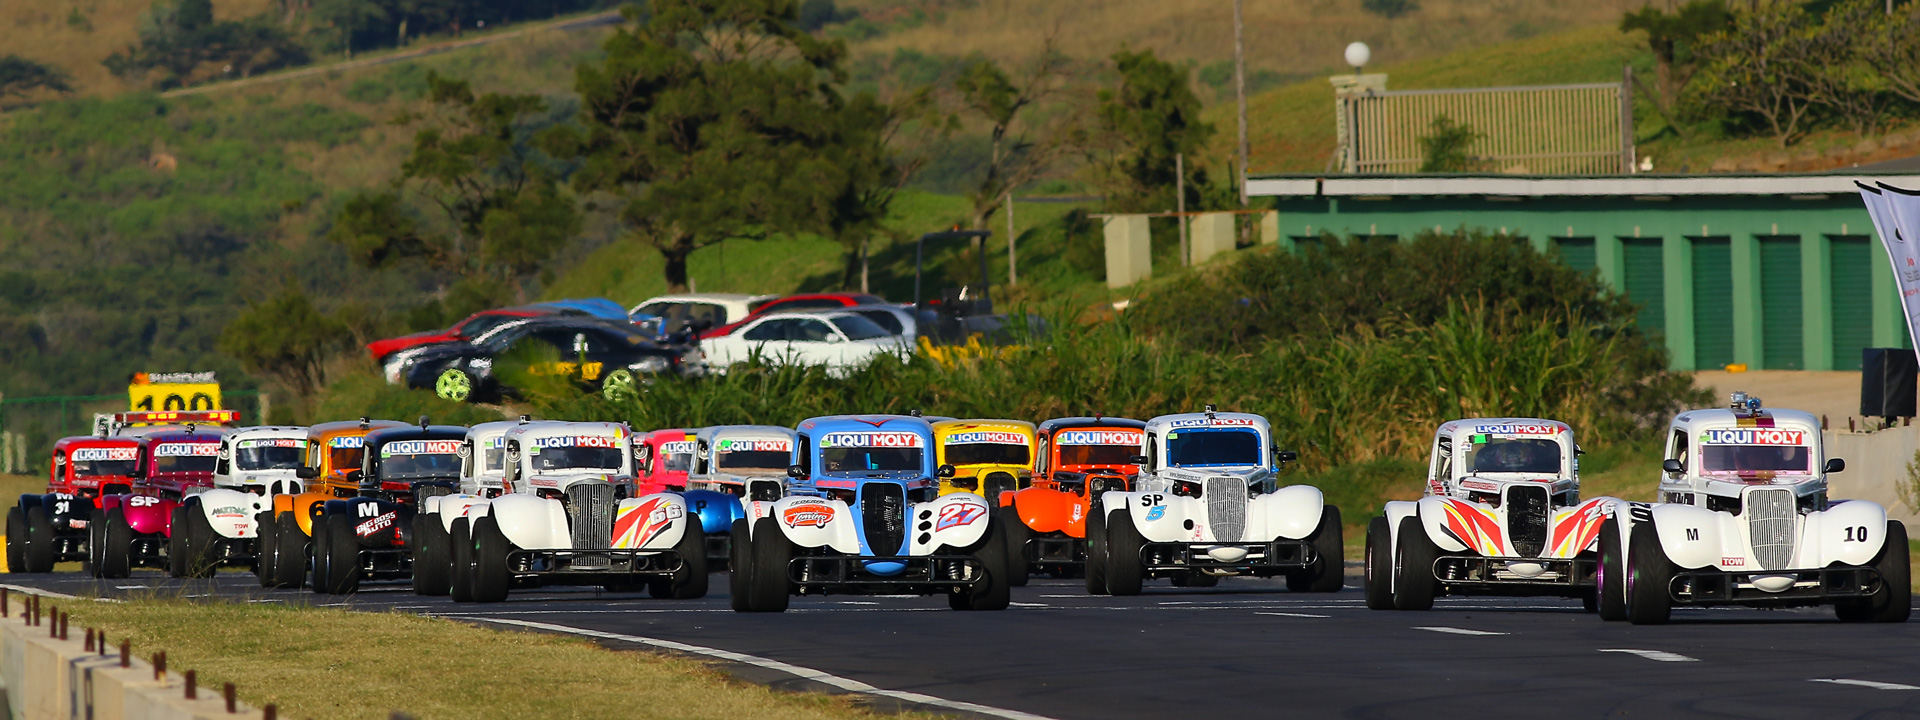 INEX Legends Championship - Round 4 - Dezzi - 2016-06-04 - Race Report